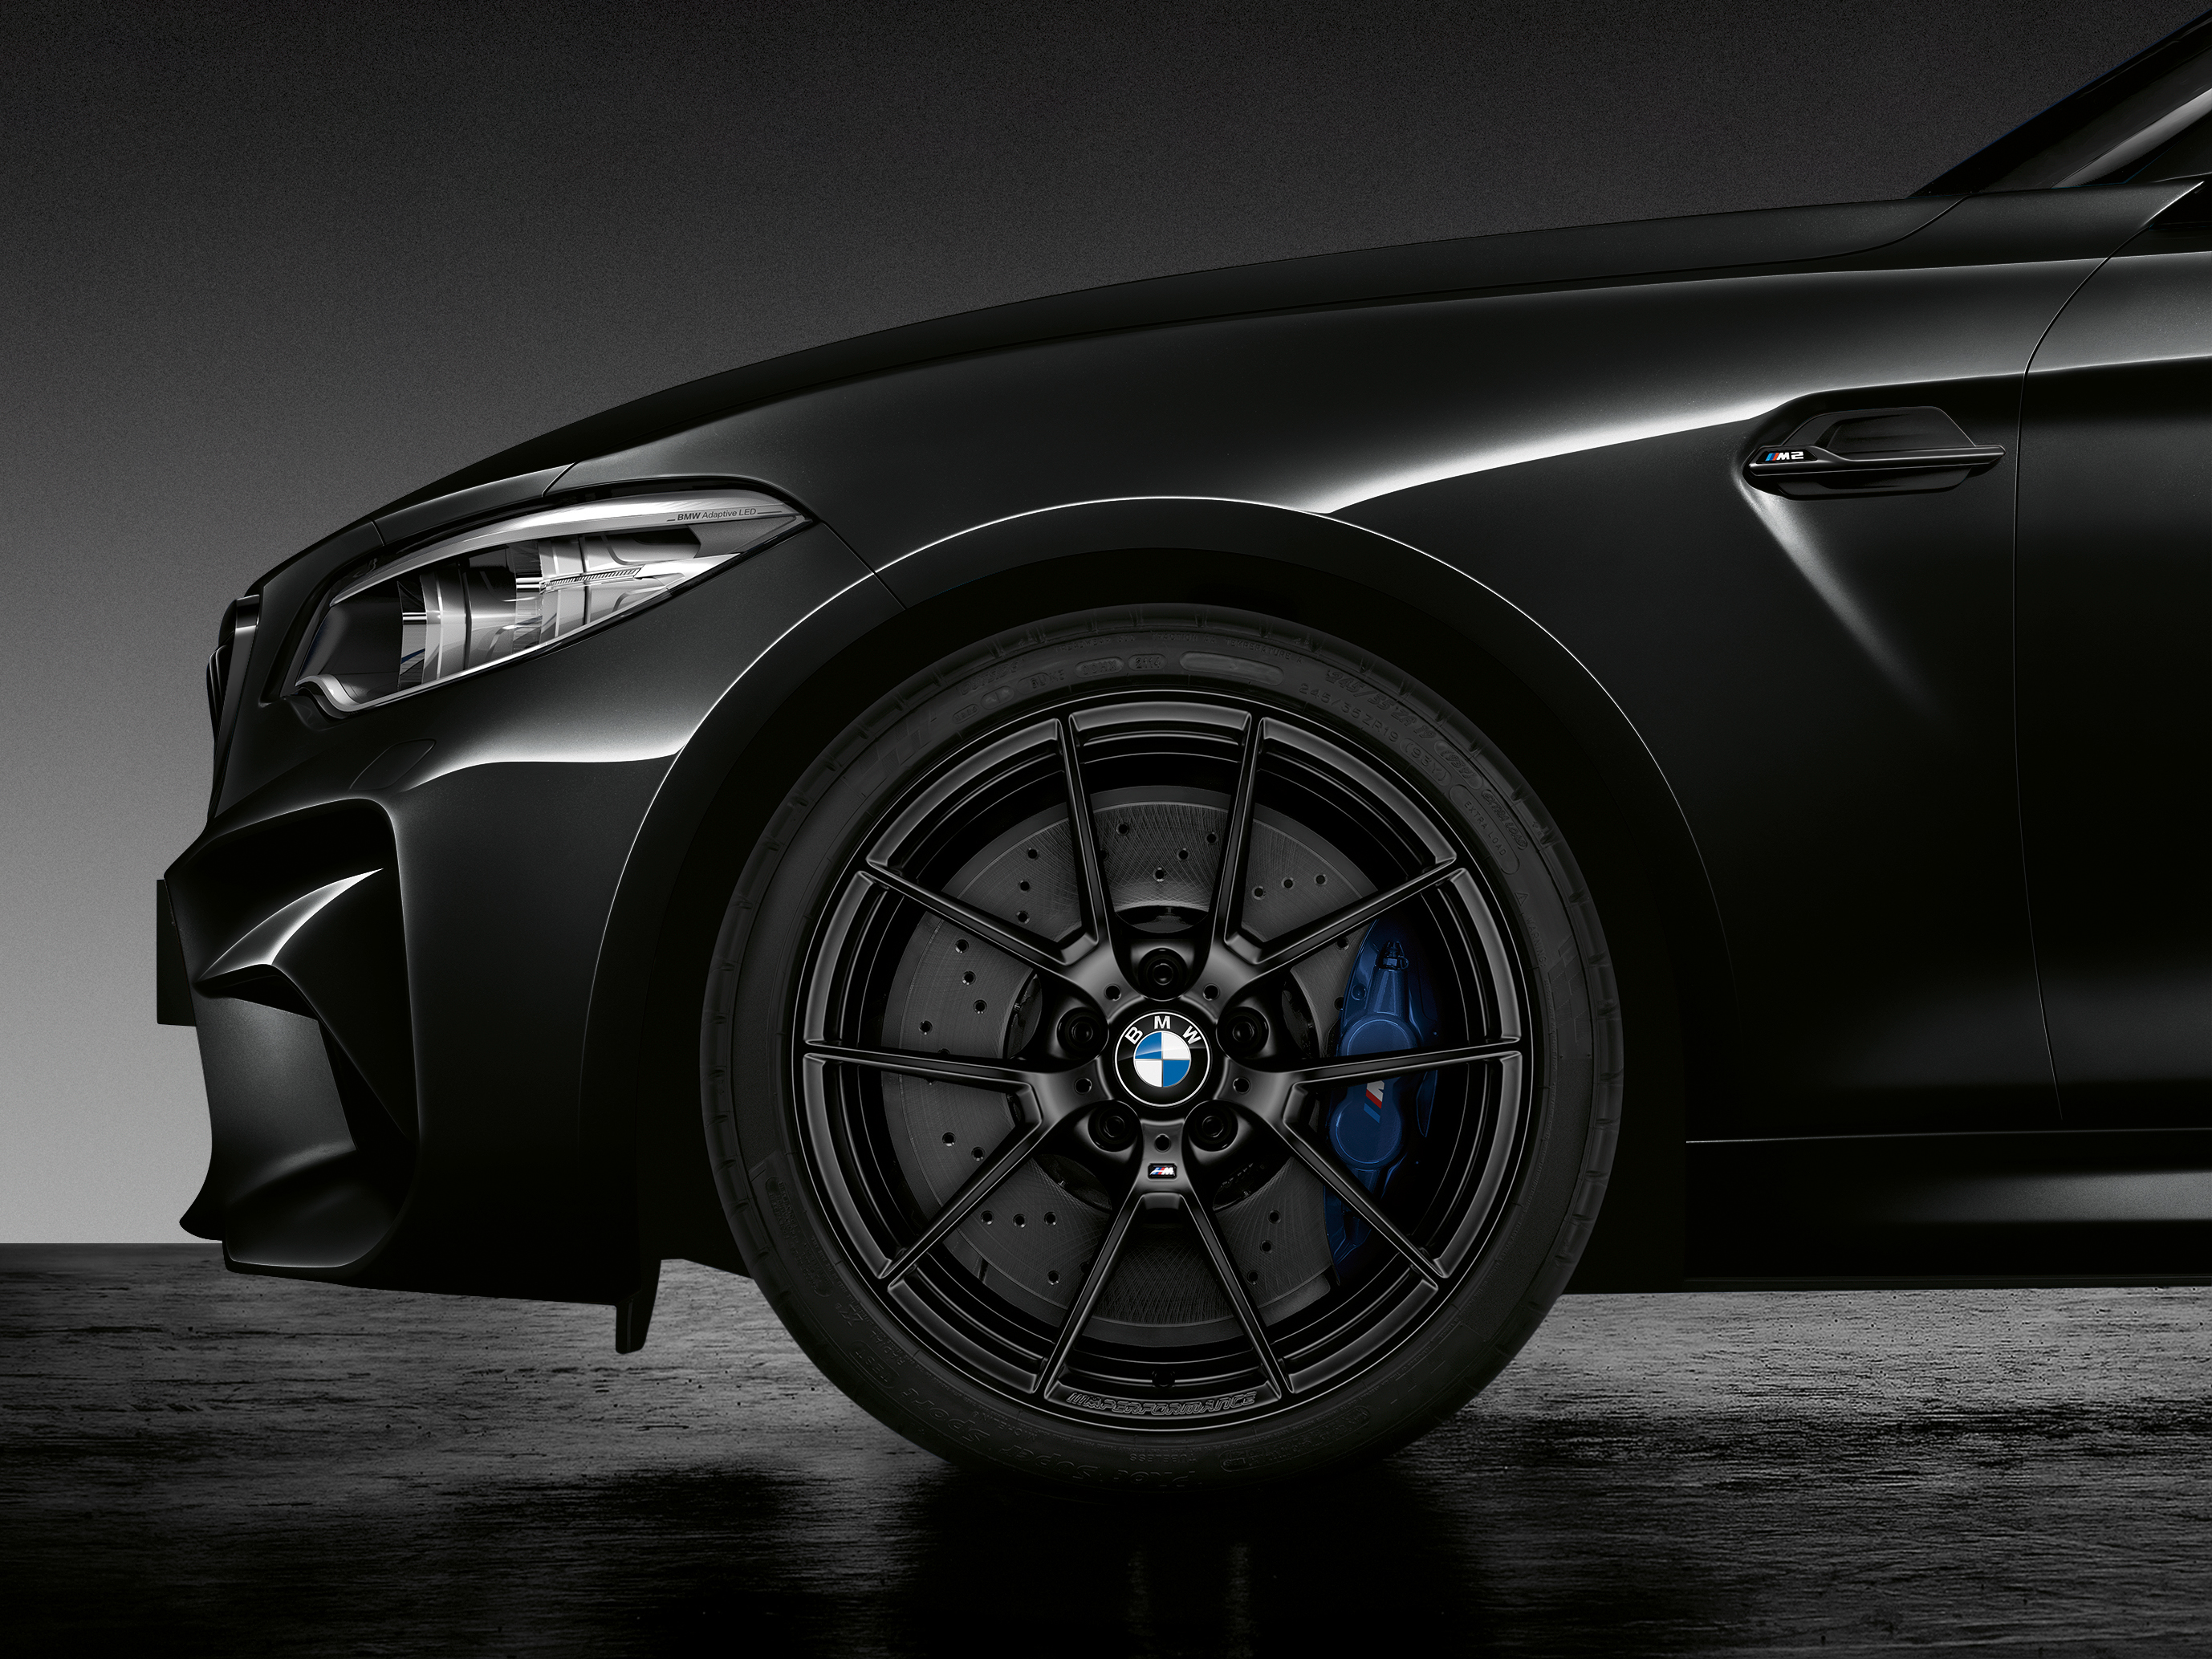 Auto Transport Companies >> BMW M2 Coupe Edition Black Shadow : 2018 | Cartype